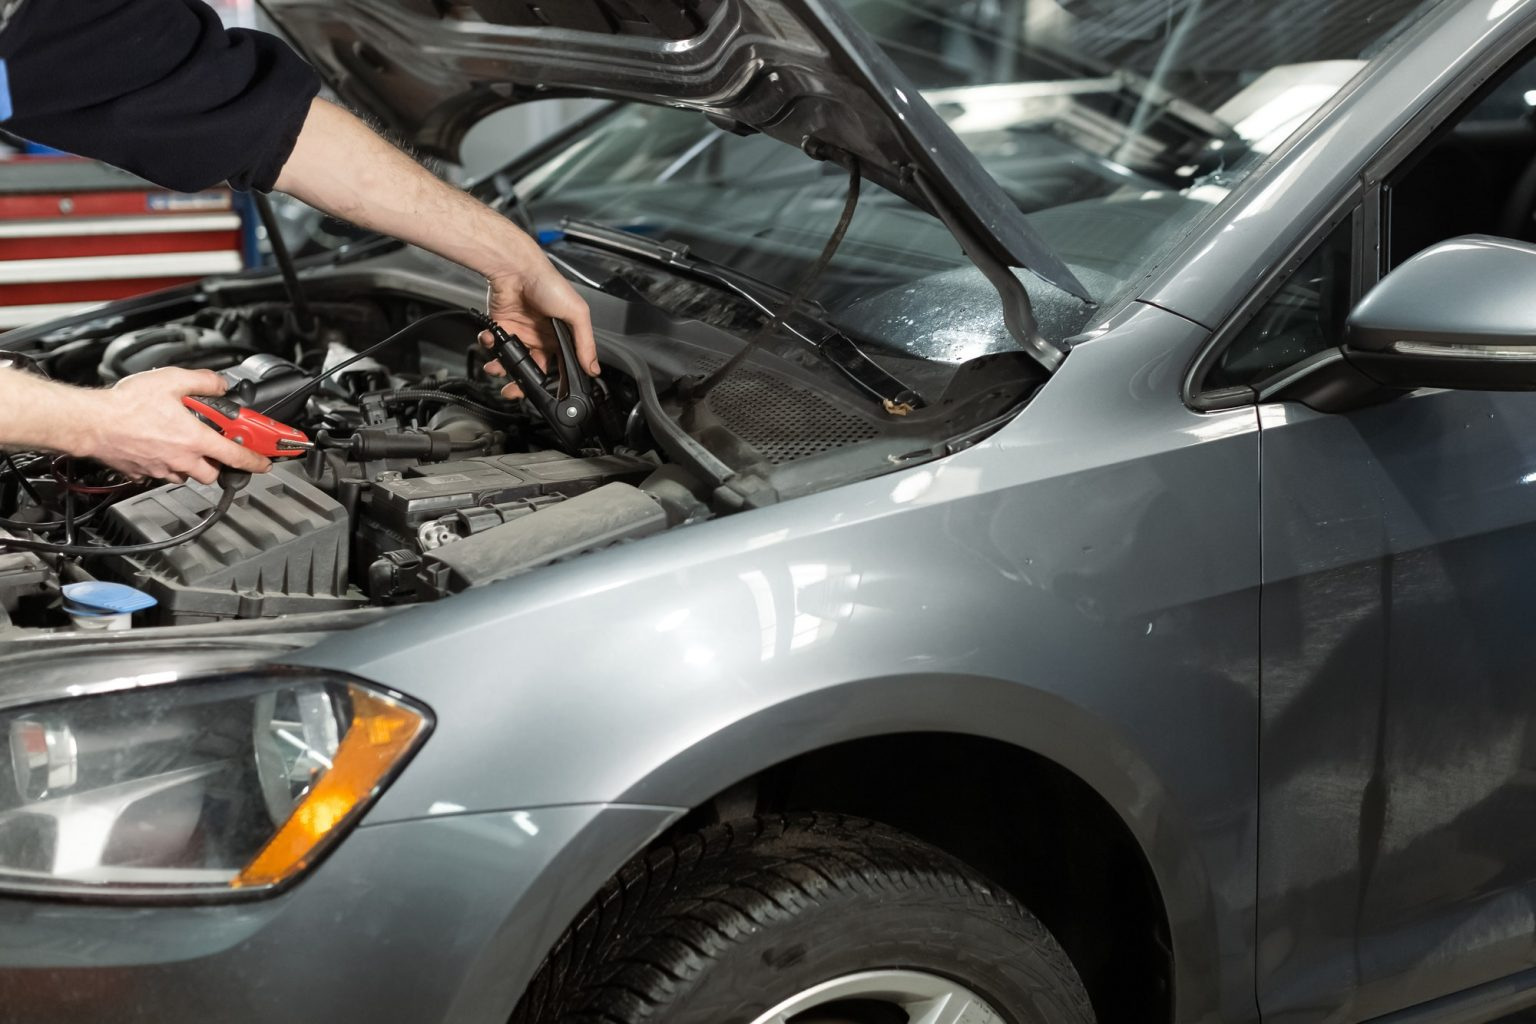 Technician hands measure the voltage of the battery in the car at service station